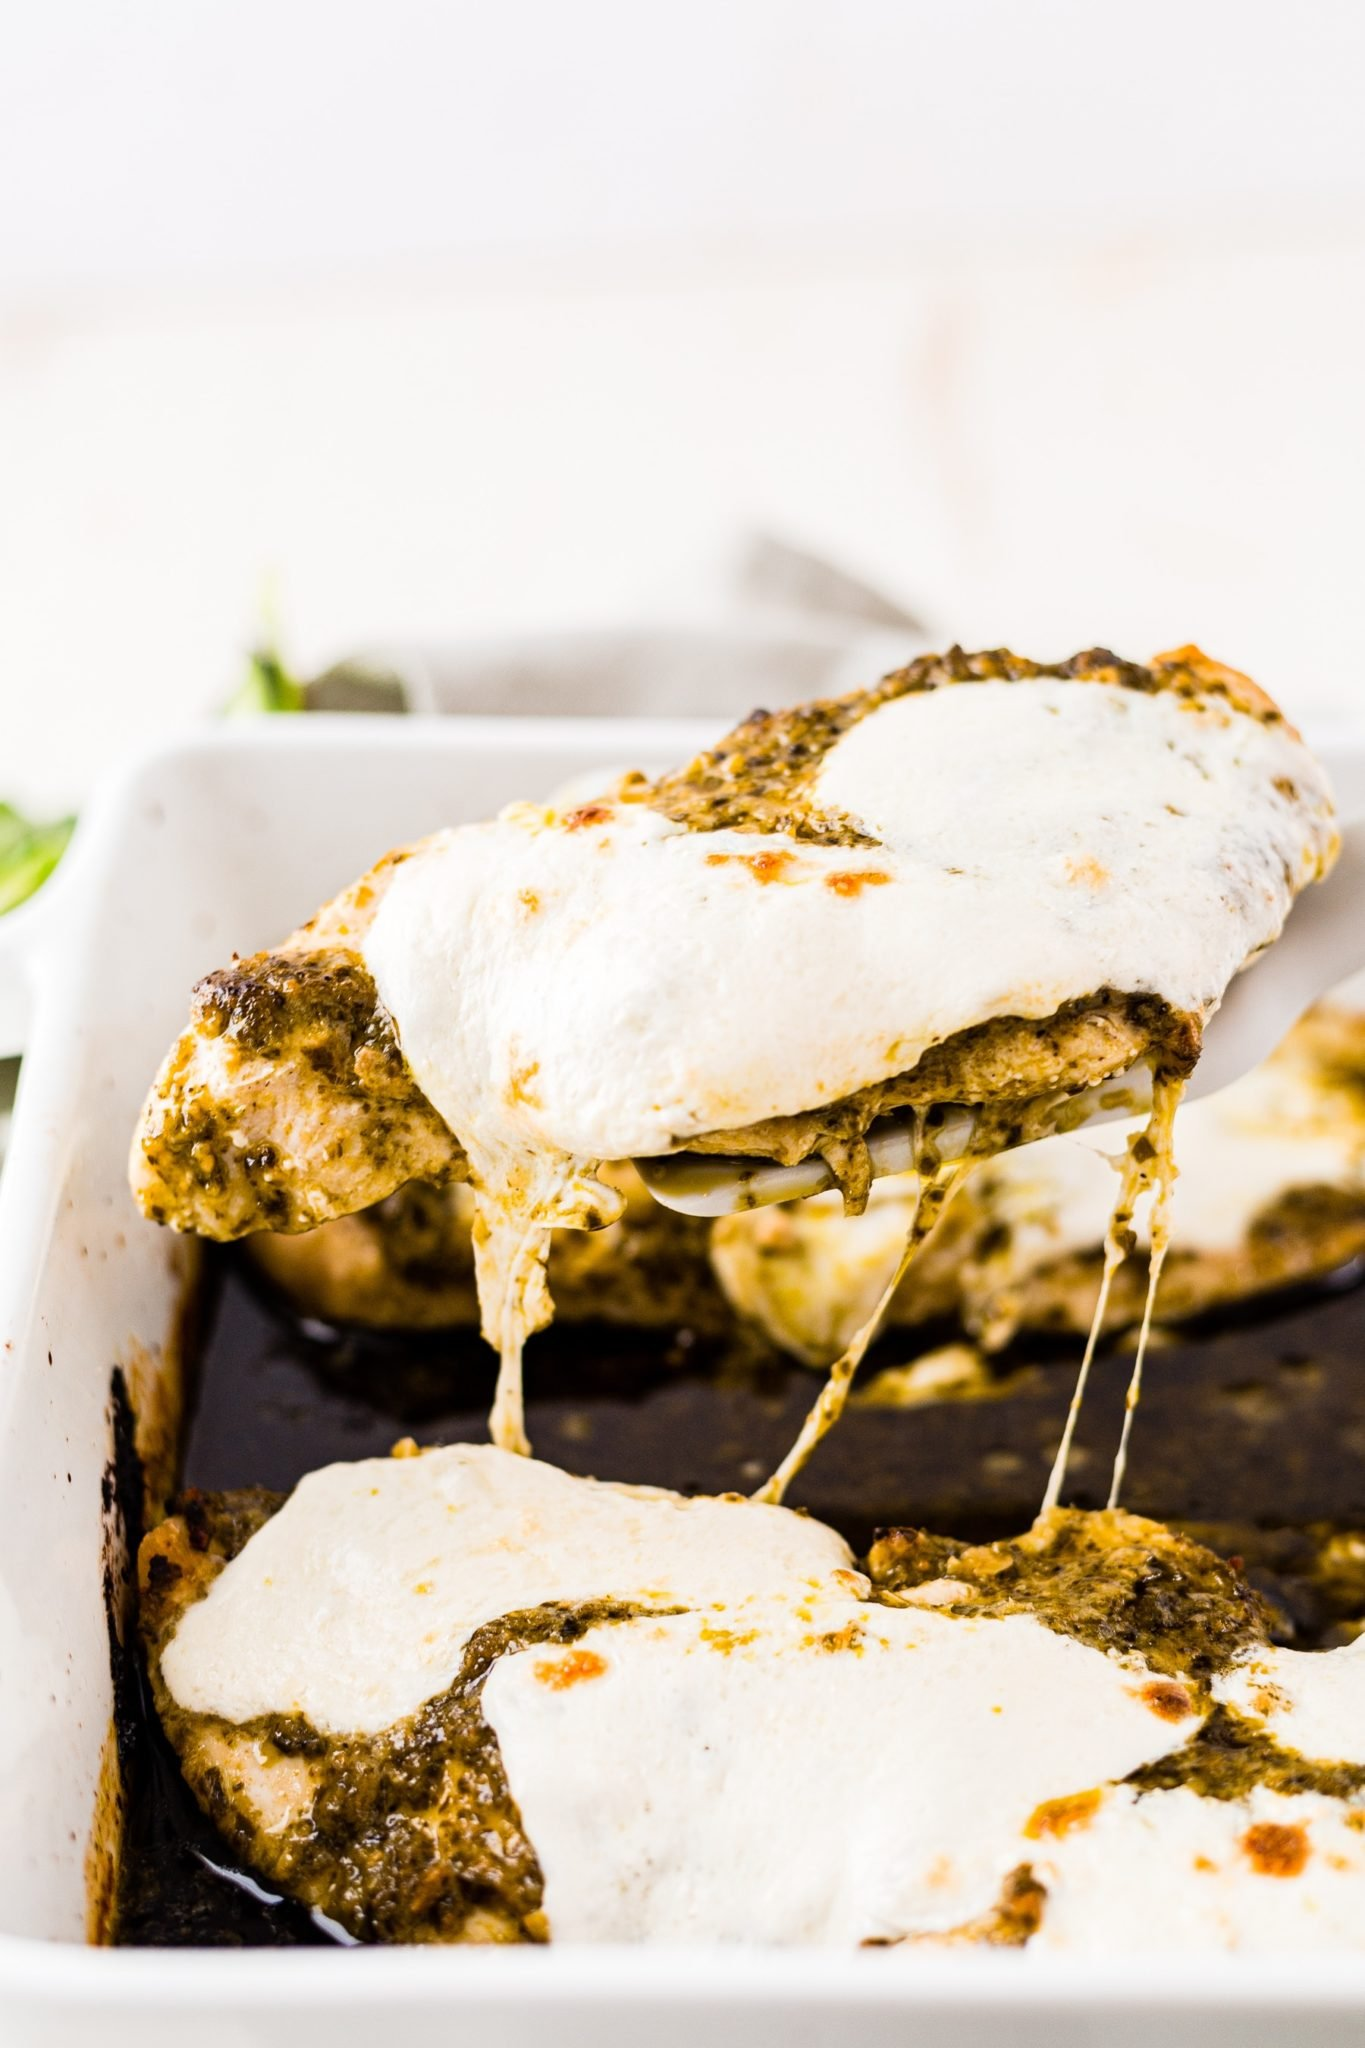 pesto chicken covered in mozzarella being pulled out of a baking dish and the cheese